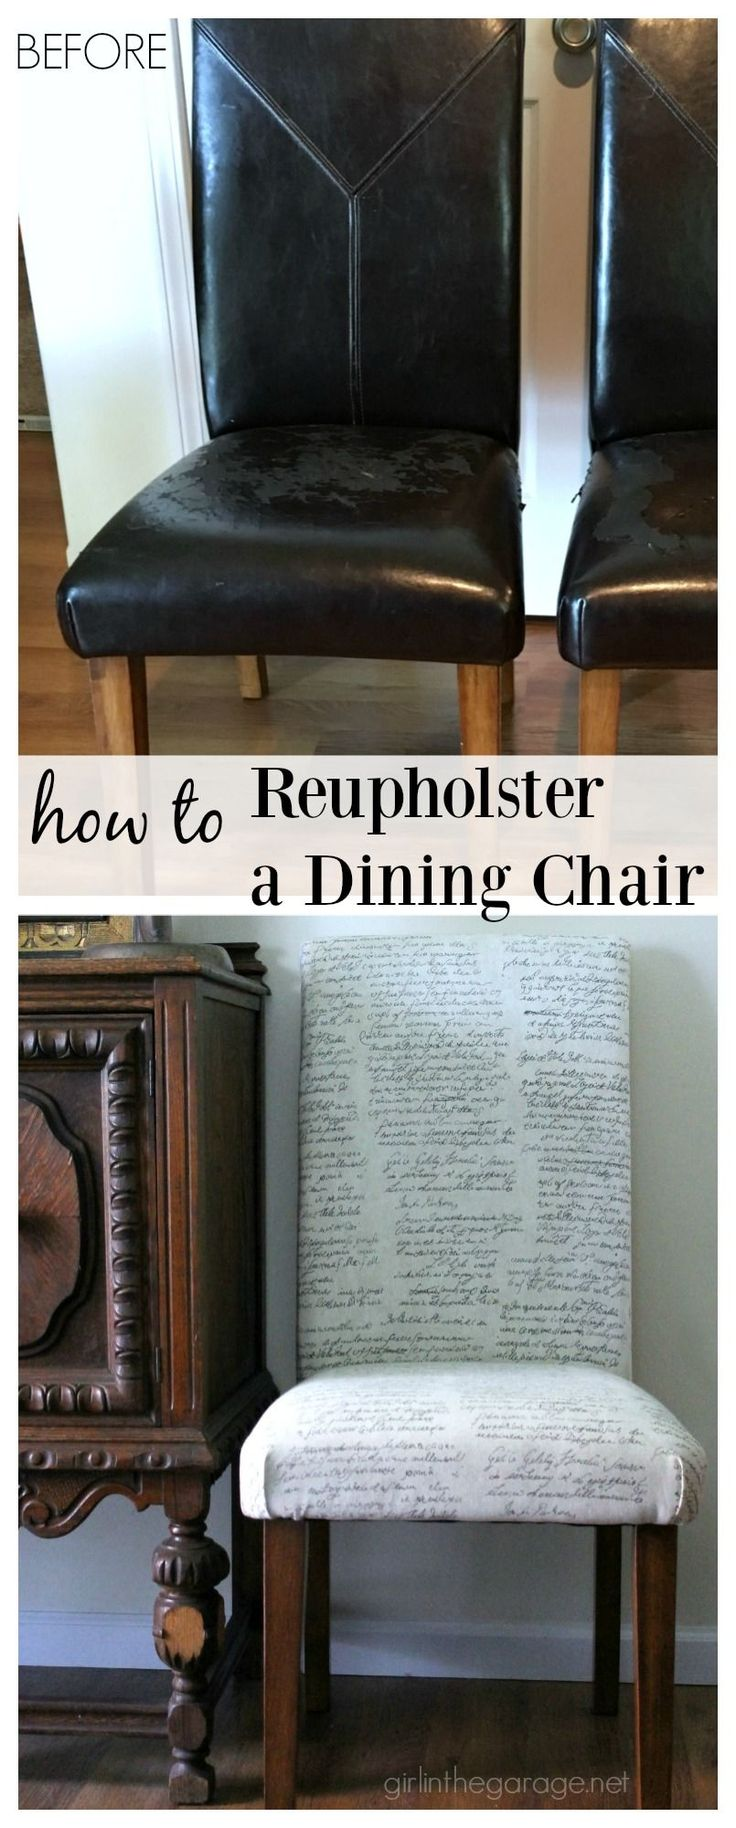 17 Best ideas about Dining Chair Redo on Pinterest